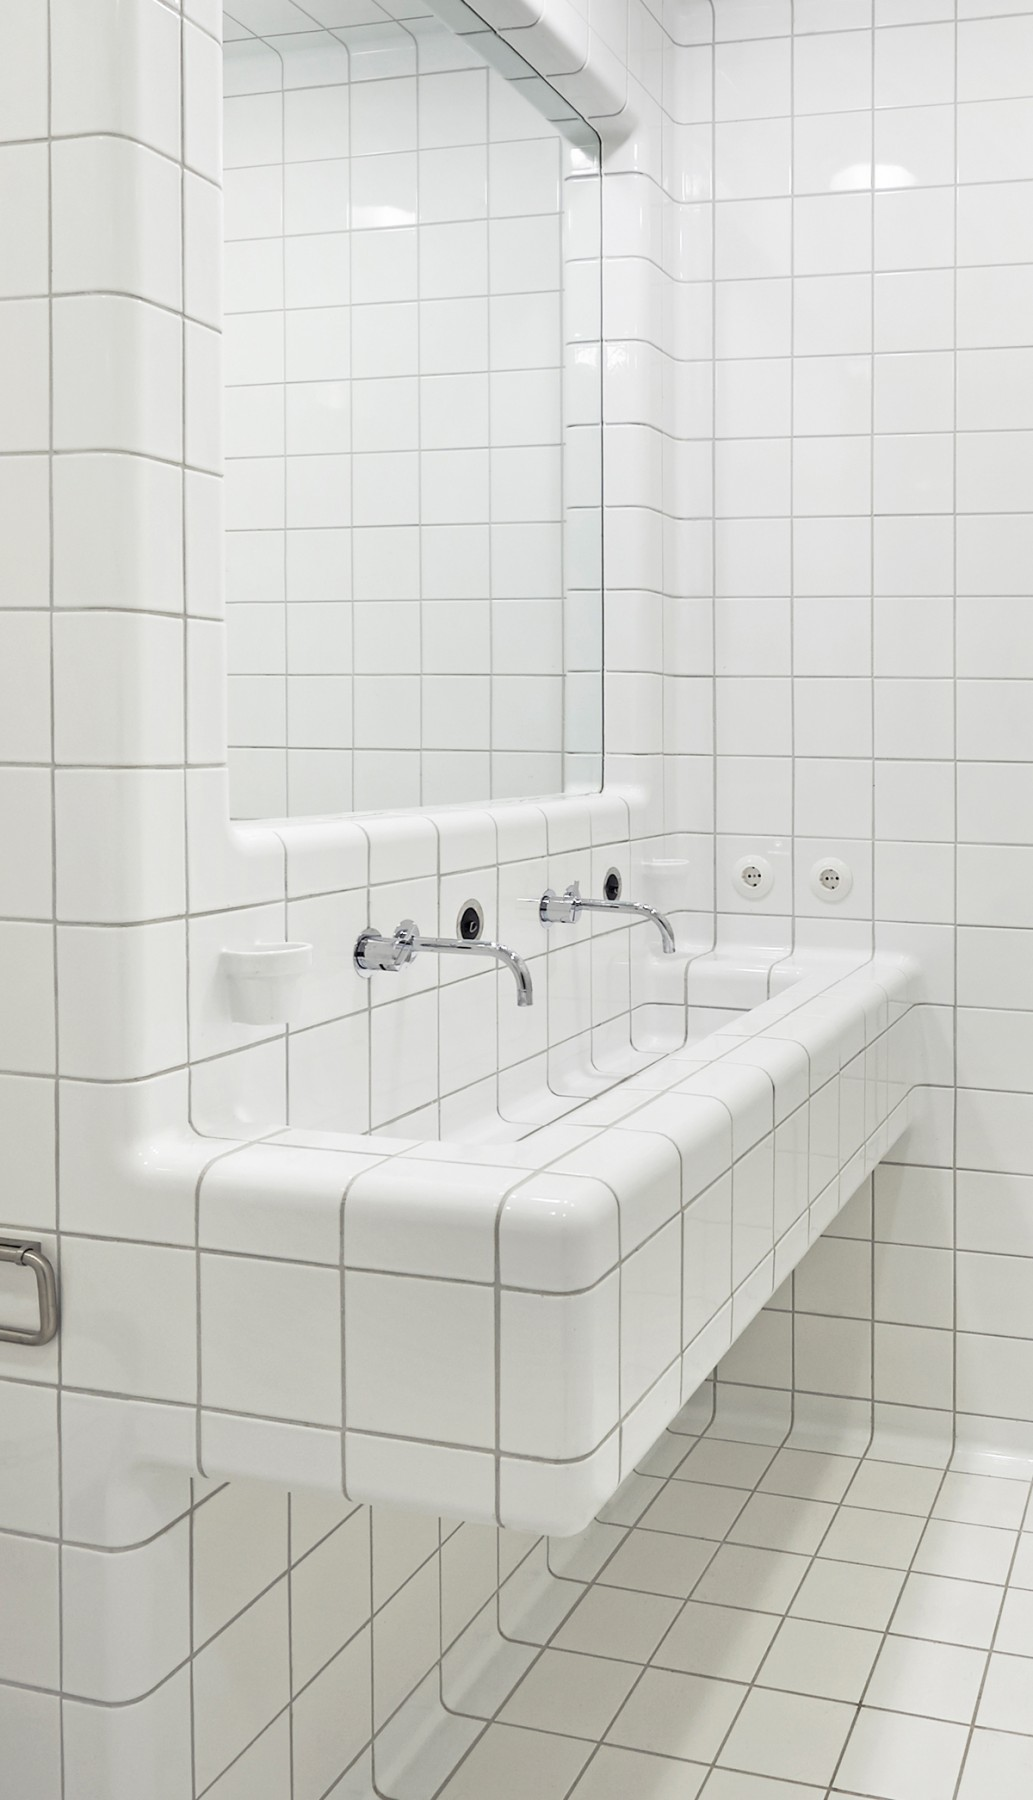 3d tiled sink, modern rounded three-dimensional construction and functional tiles available in multiple colors